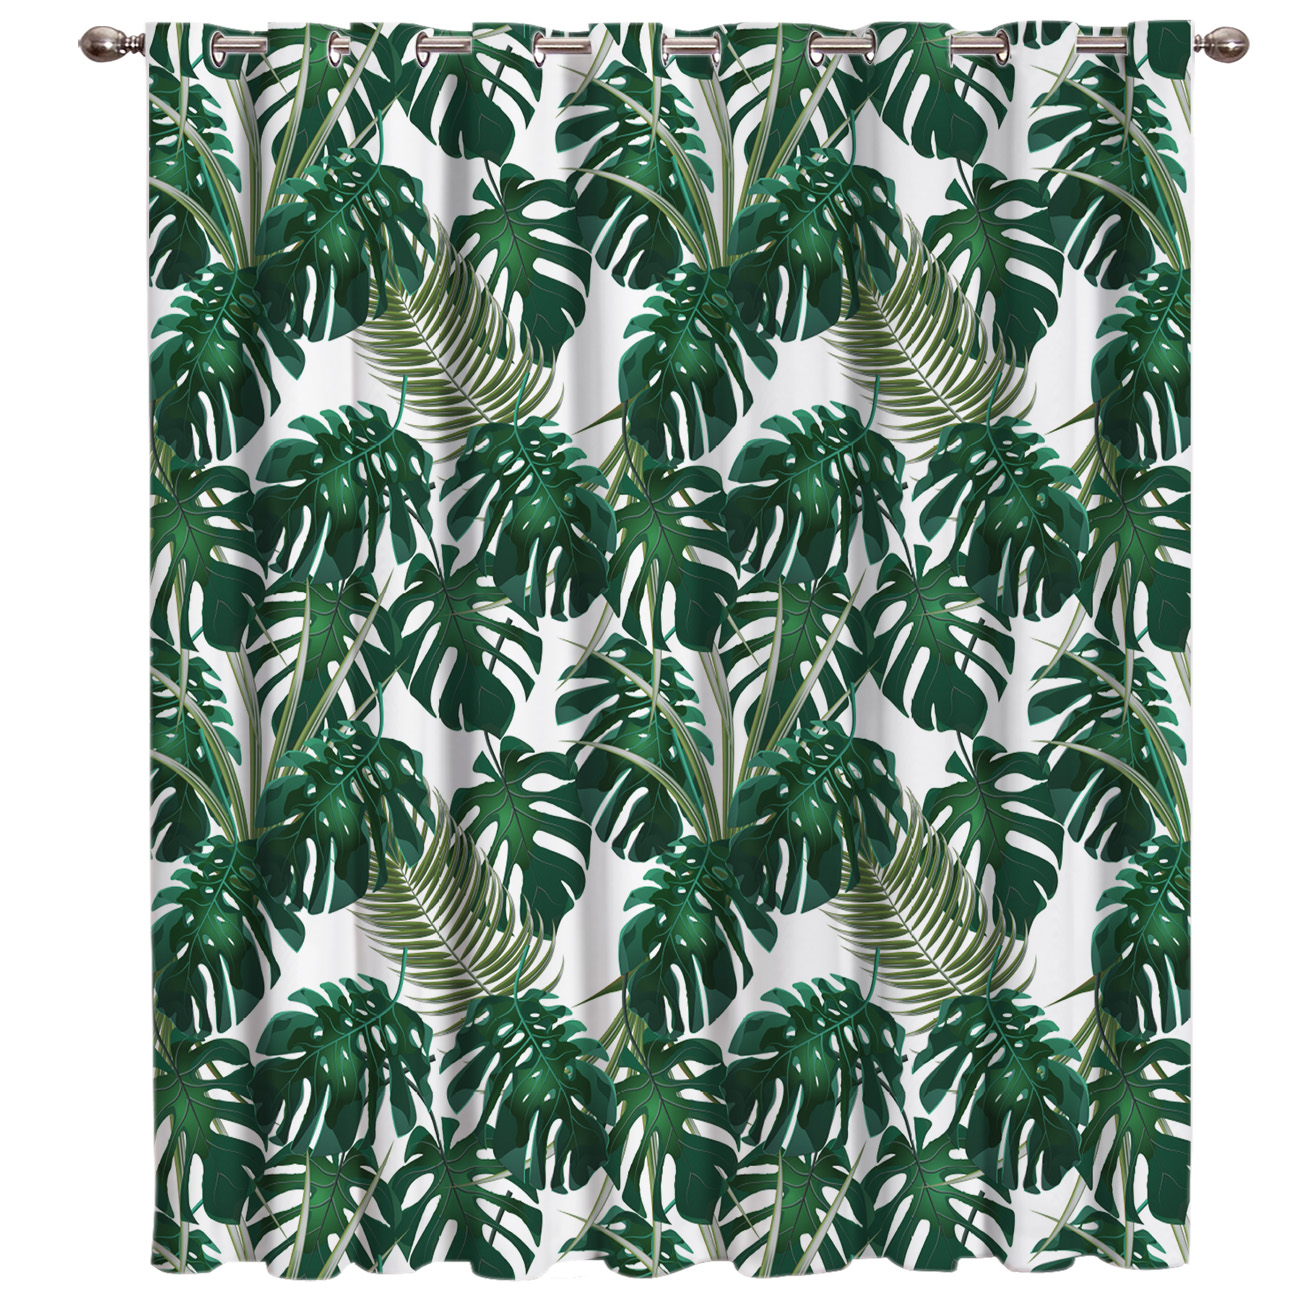 Nordic Windy Tropical Banana Leaves Window Treatments Curtains Valance Living Room Blackout Bathroom Outdoor Fabric Curtain